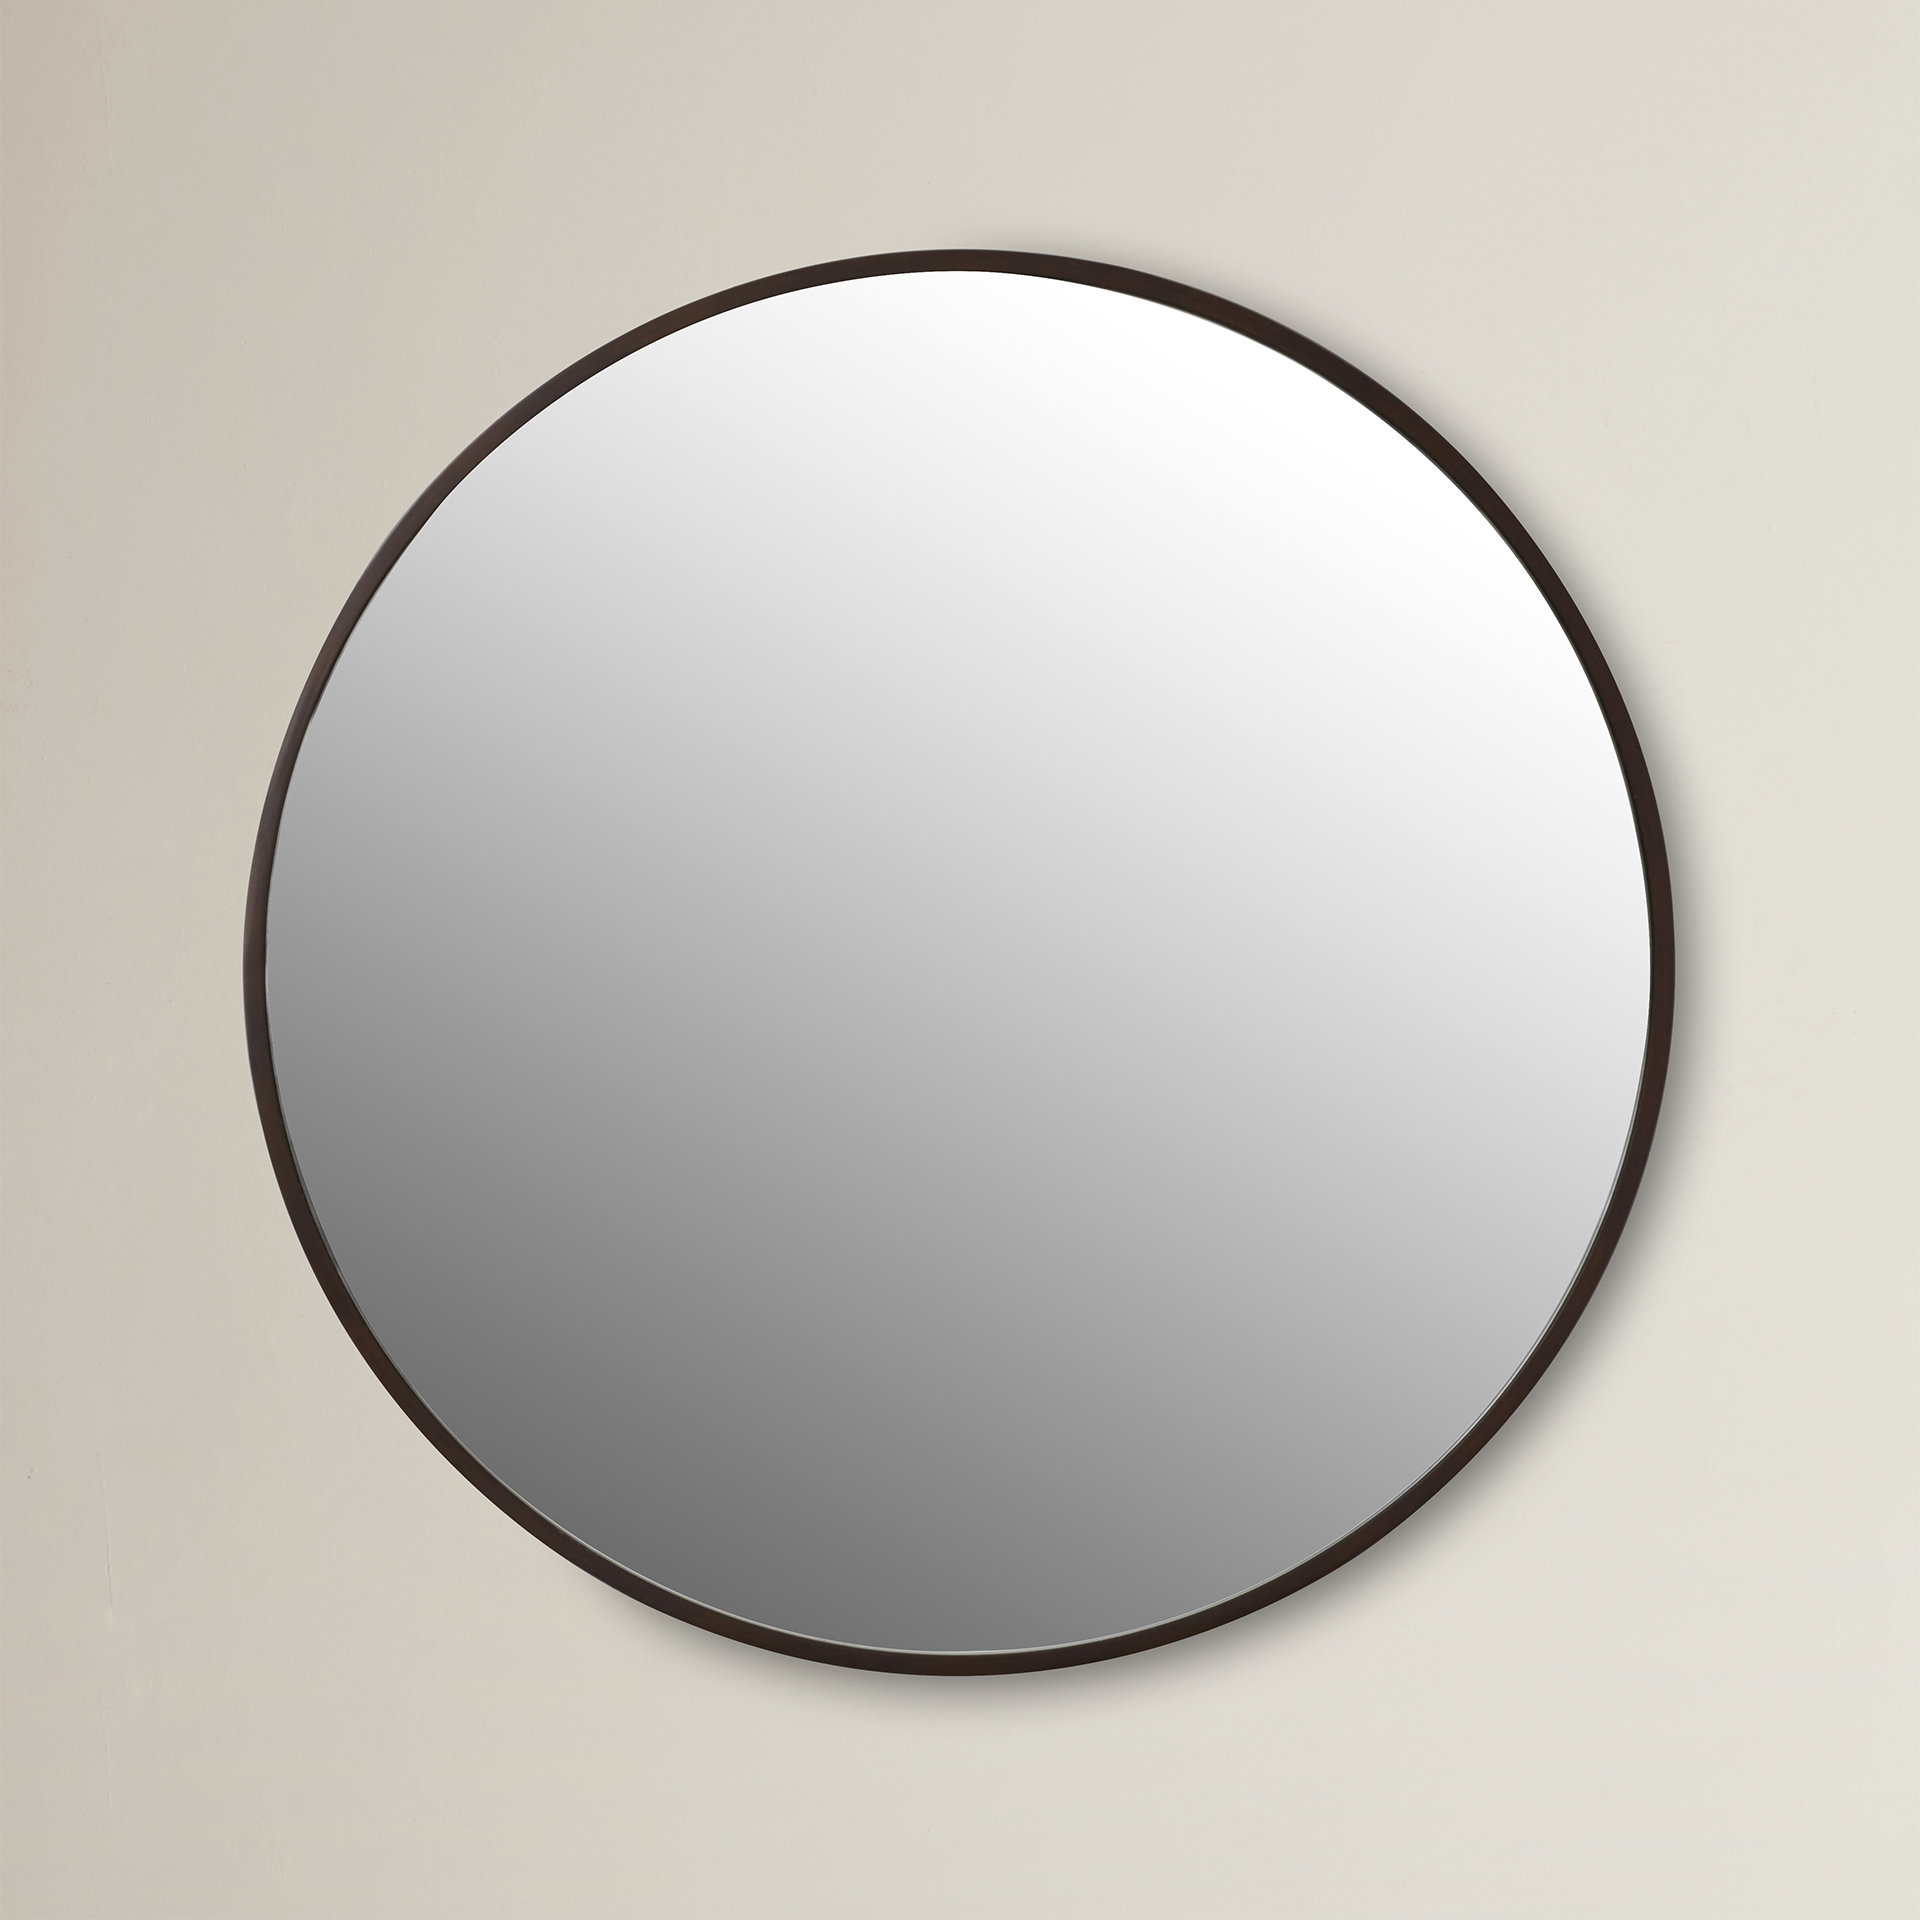 Industrial Mirrors | Joss & Main For Koeller Industrial Metal Wall Mirrors (Image 5 of 20)